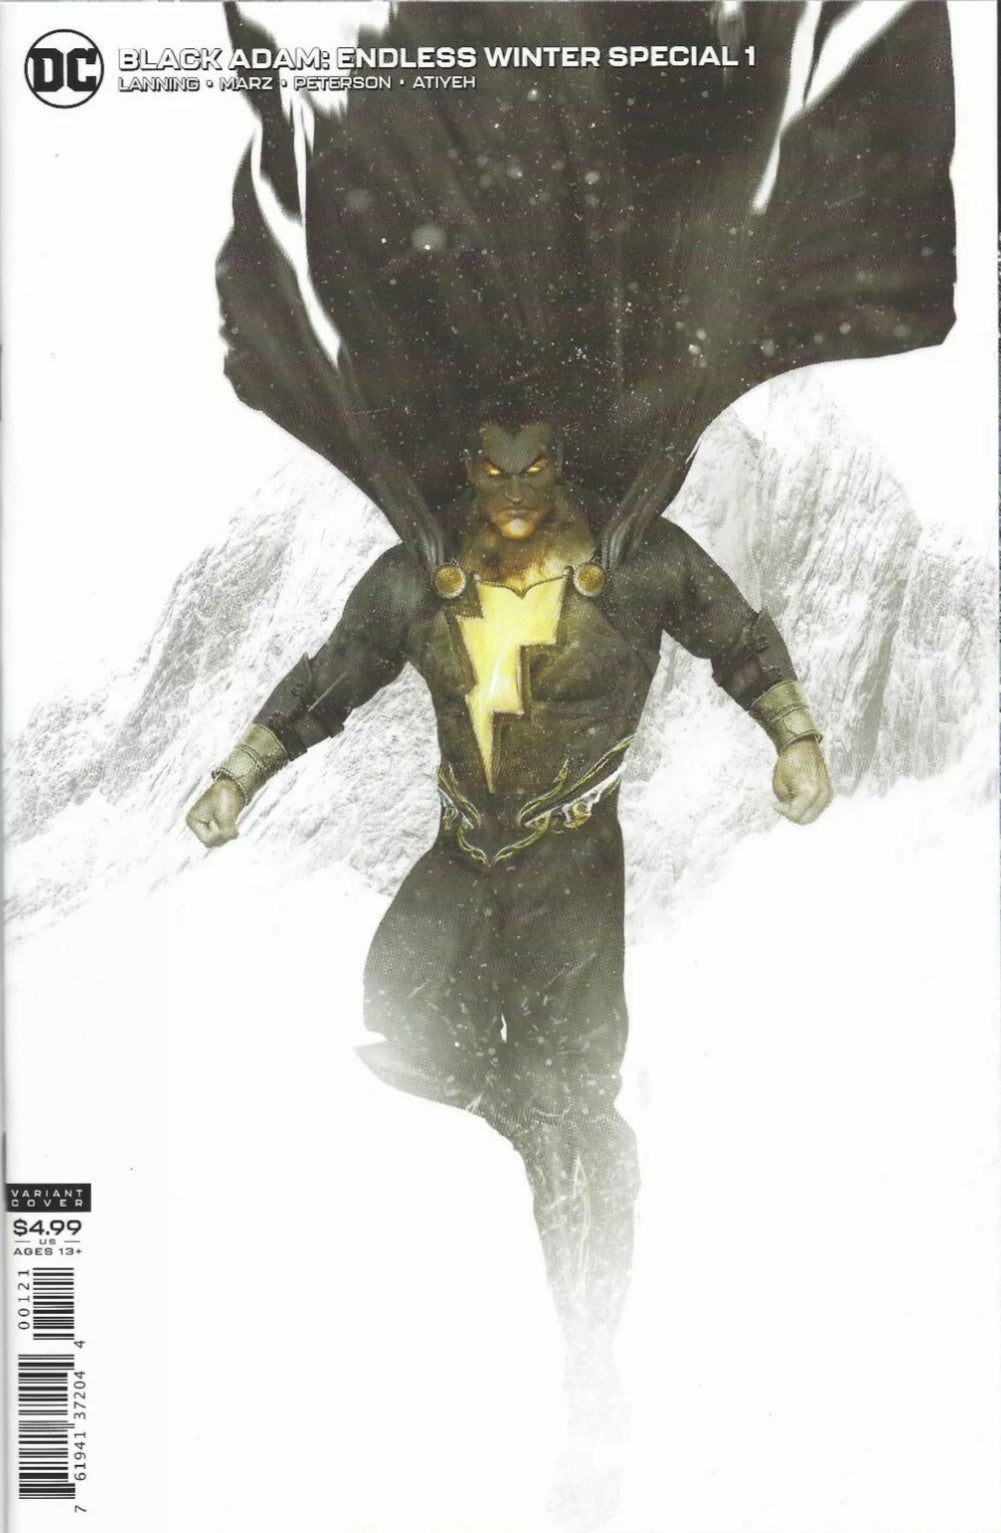 BLACK ADAM ENDLESS WINTER SPECIAL #1 (ONE SHOT) CVR B BOSSLOGIC CARD STOCK VAR